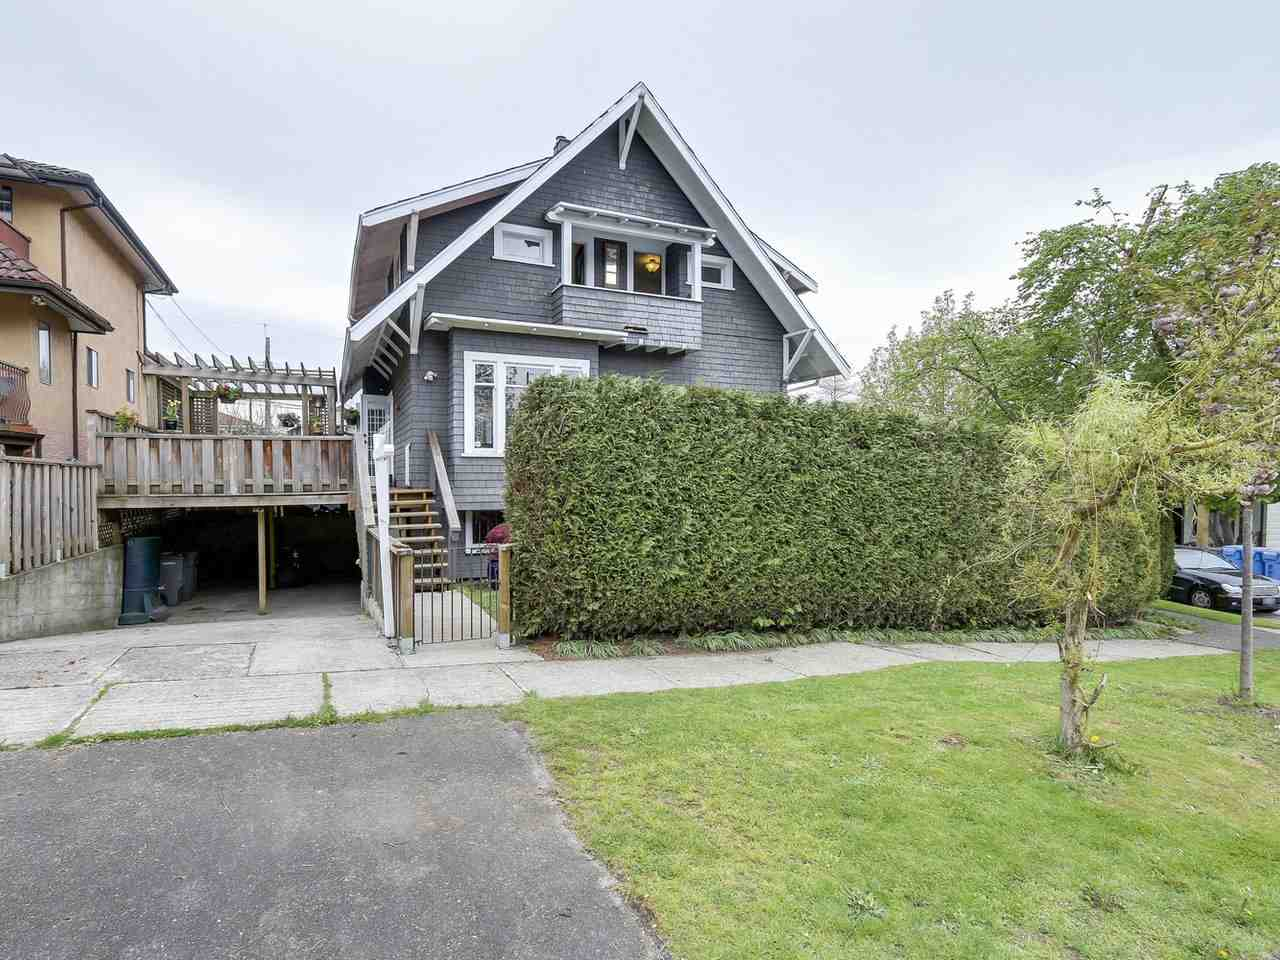 "Main Photo: 2046 STAINSBURY Avenue in Vancouver: Victoria VE House for sale in ""Trout Lake"" (Vancouver East)  : MLS(r) # R2164595"